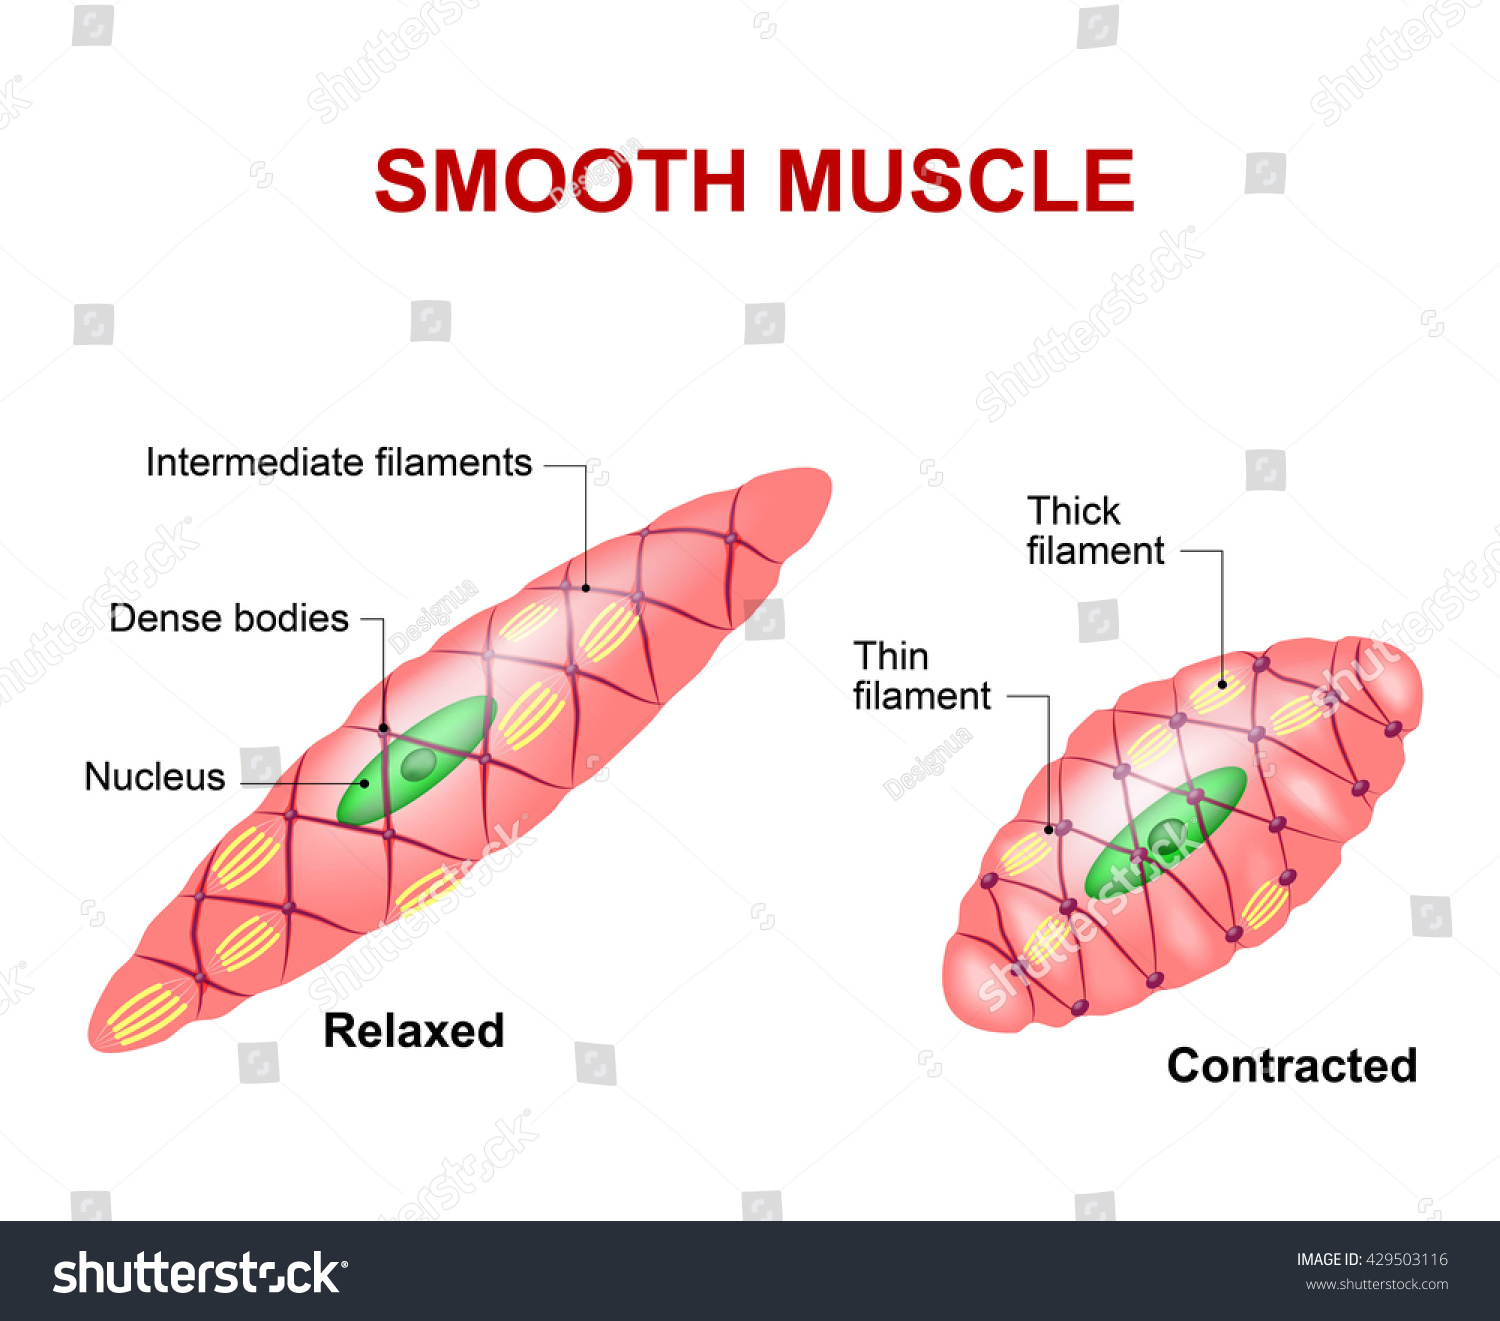 smooth muscle cell diagram, Muscles